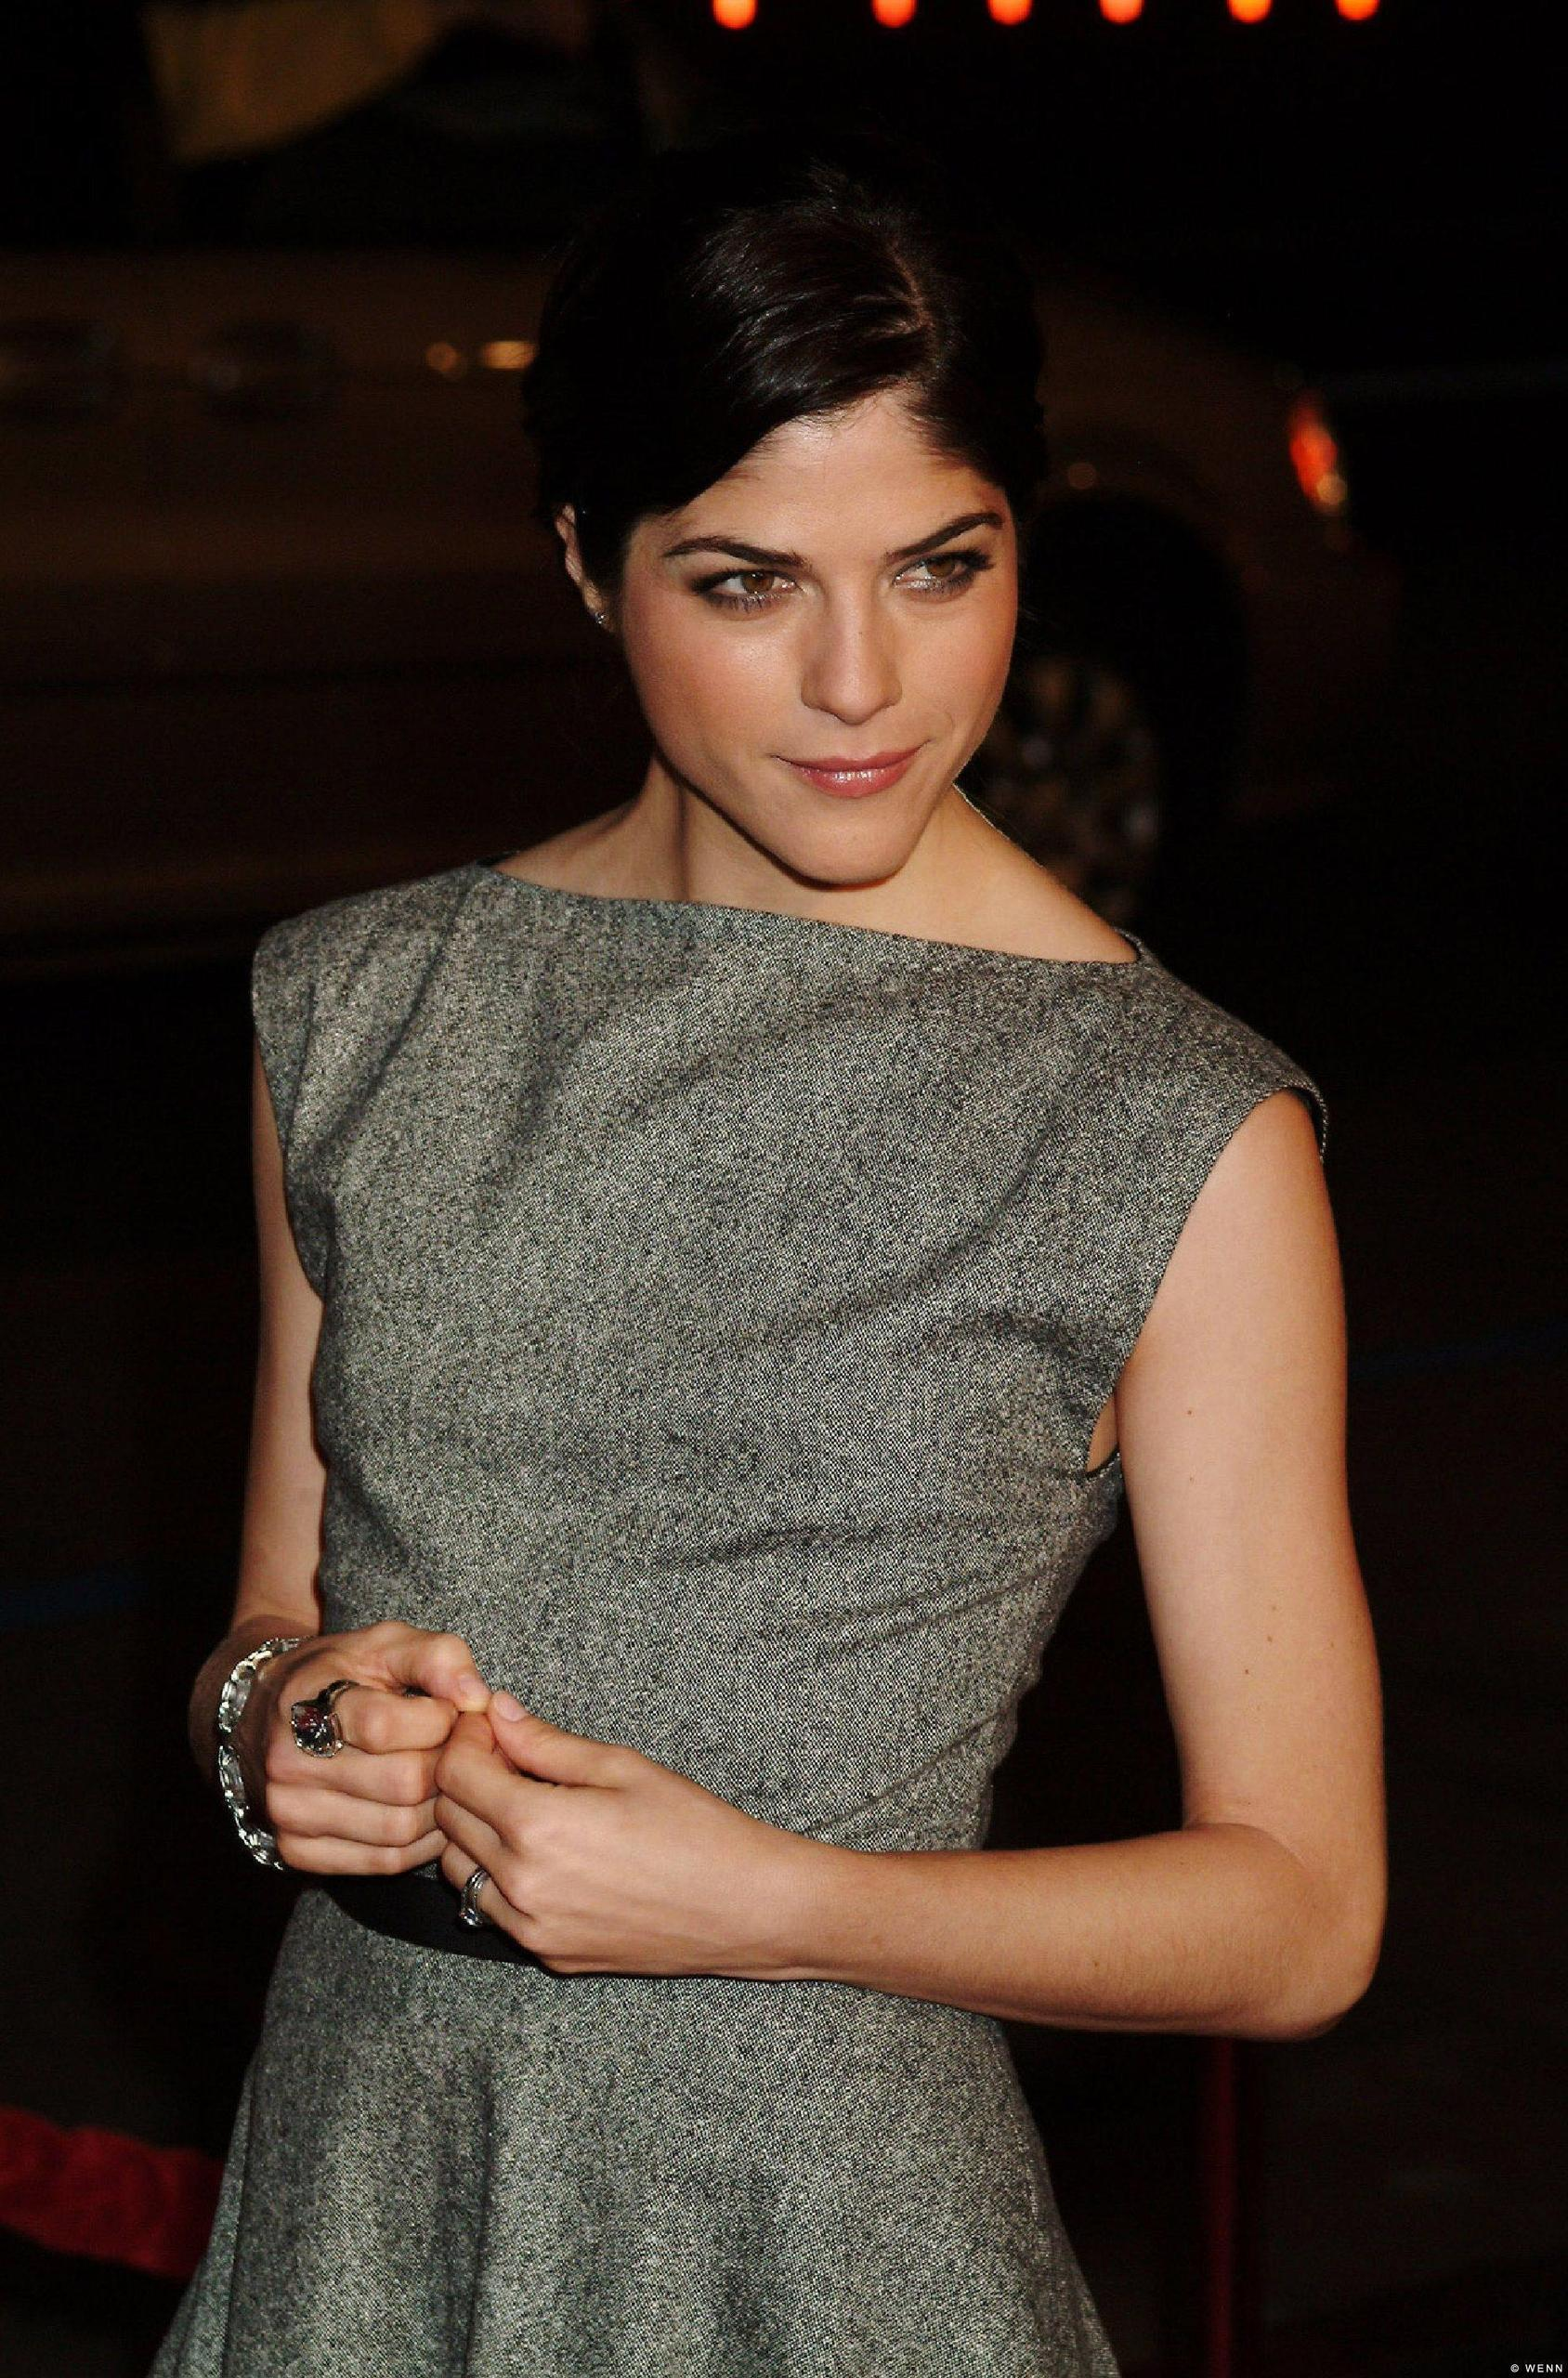 selma blair bellazon